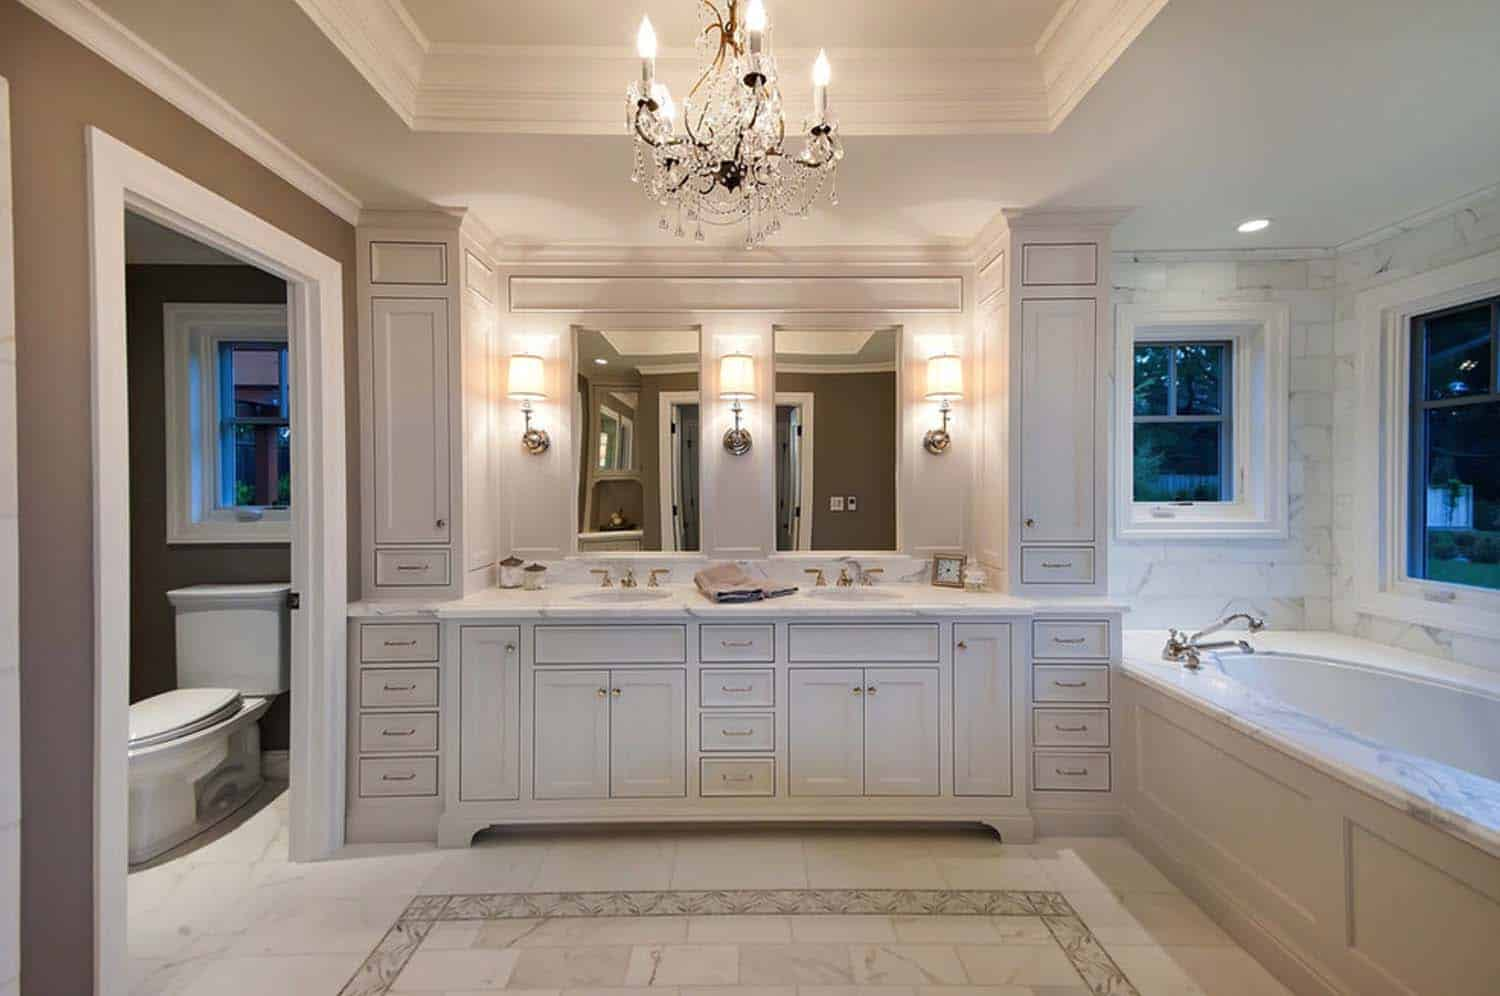 Traditional Bathroom Design Ideas-52-1 Kindesign